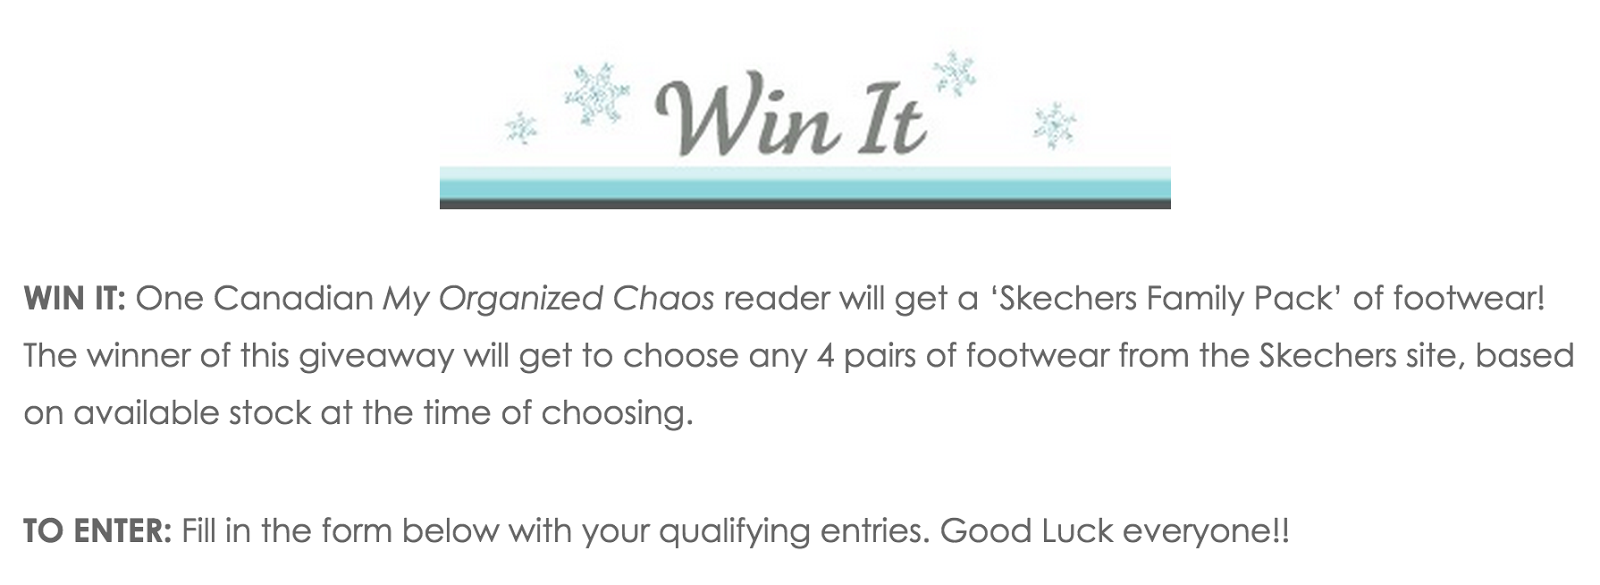 image Skechers 2015 Giveaway - My Organized Chaos